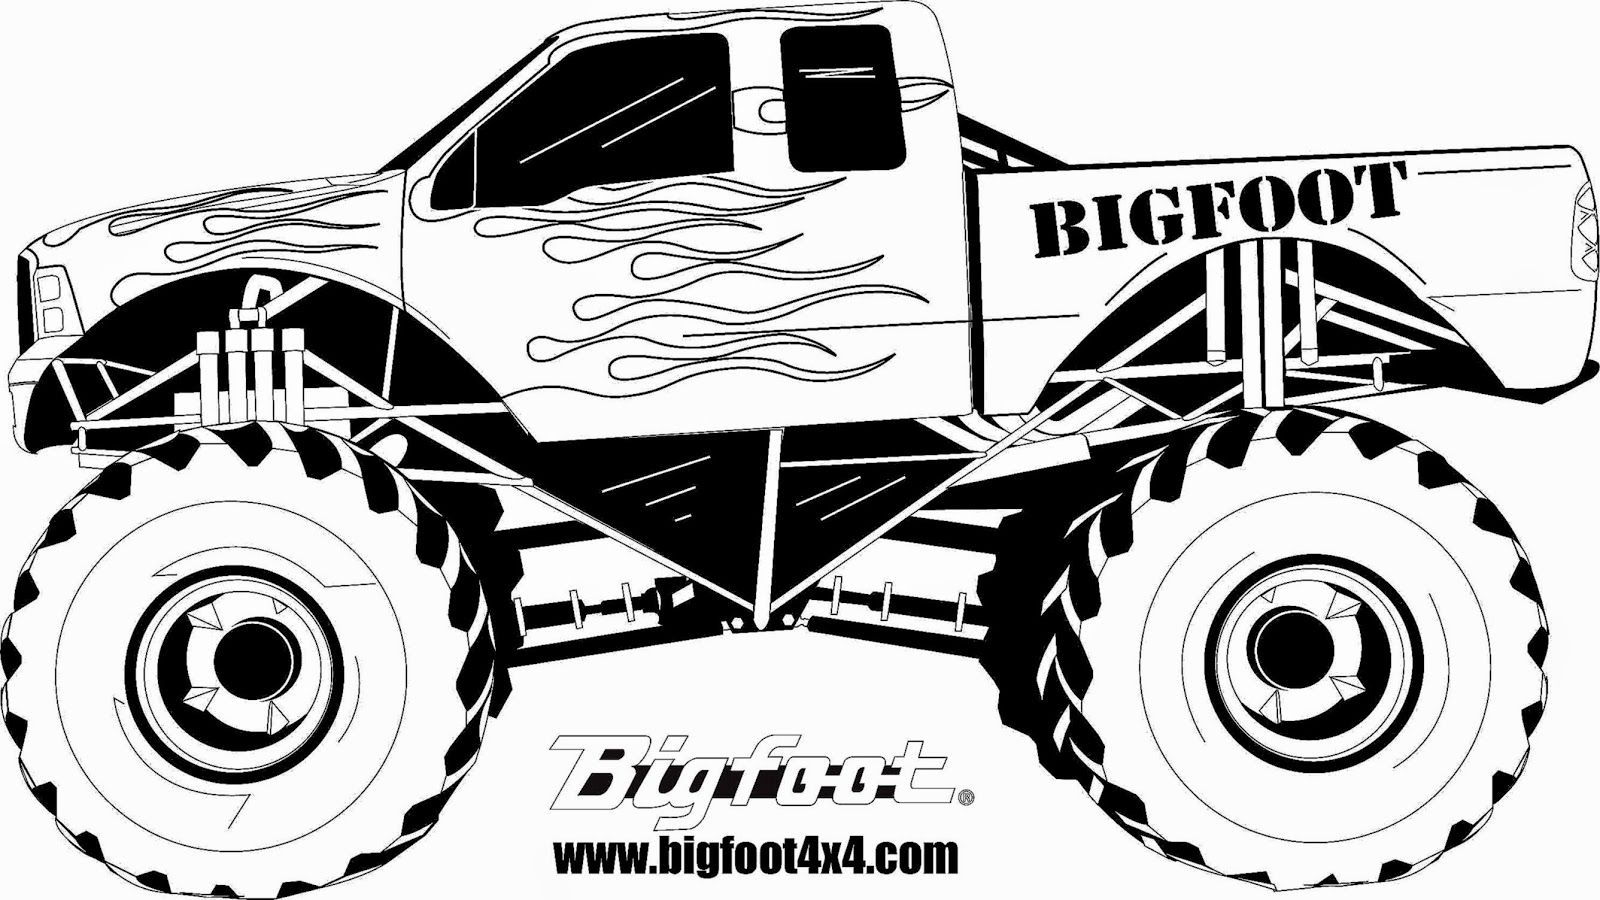 Adult Top Monster Truck Coloring Pages To Print Images top free coloring pages monster jam trucks printable gallery images